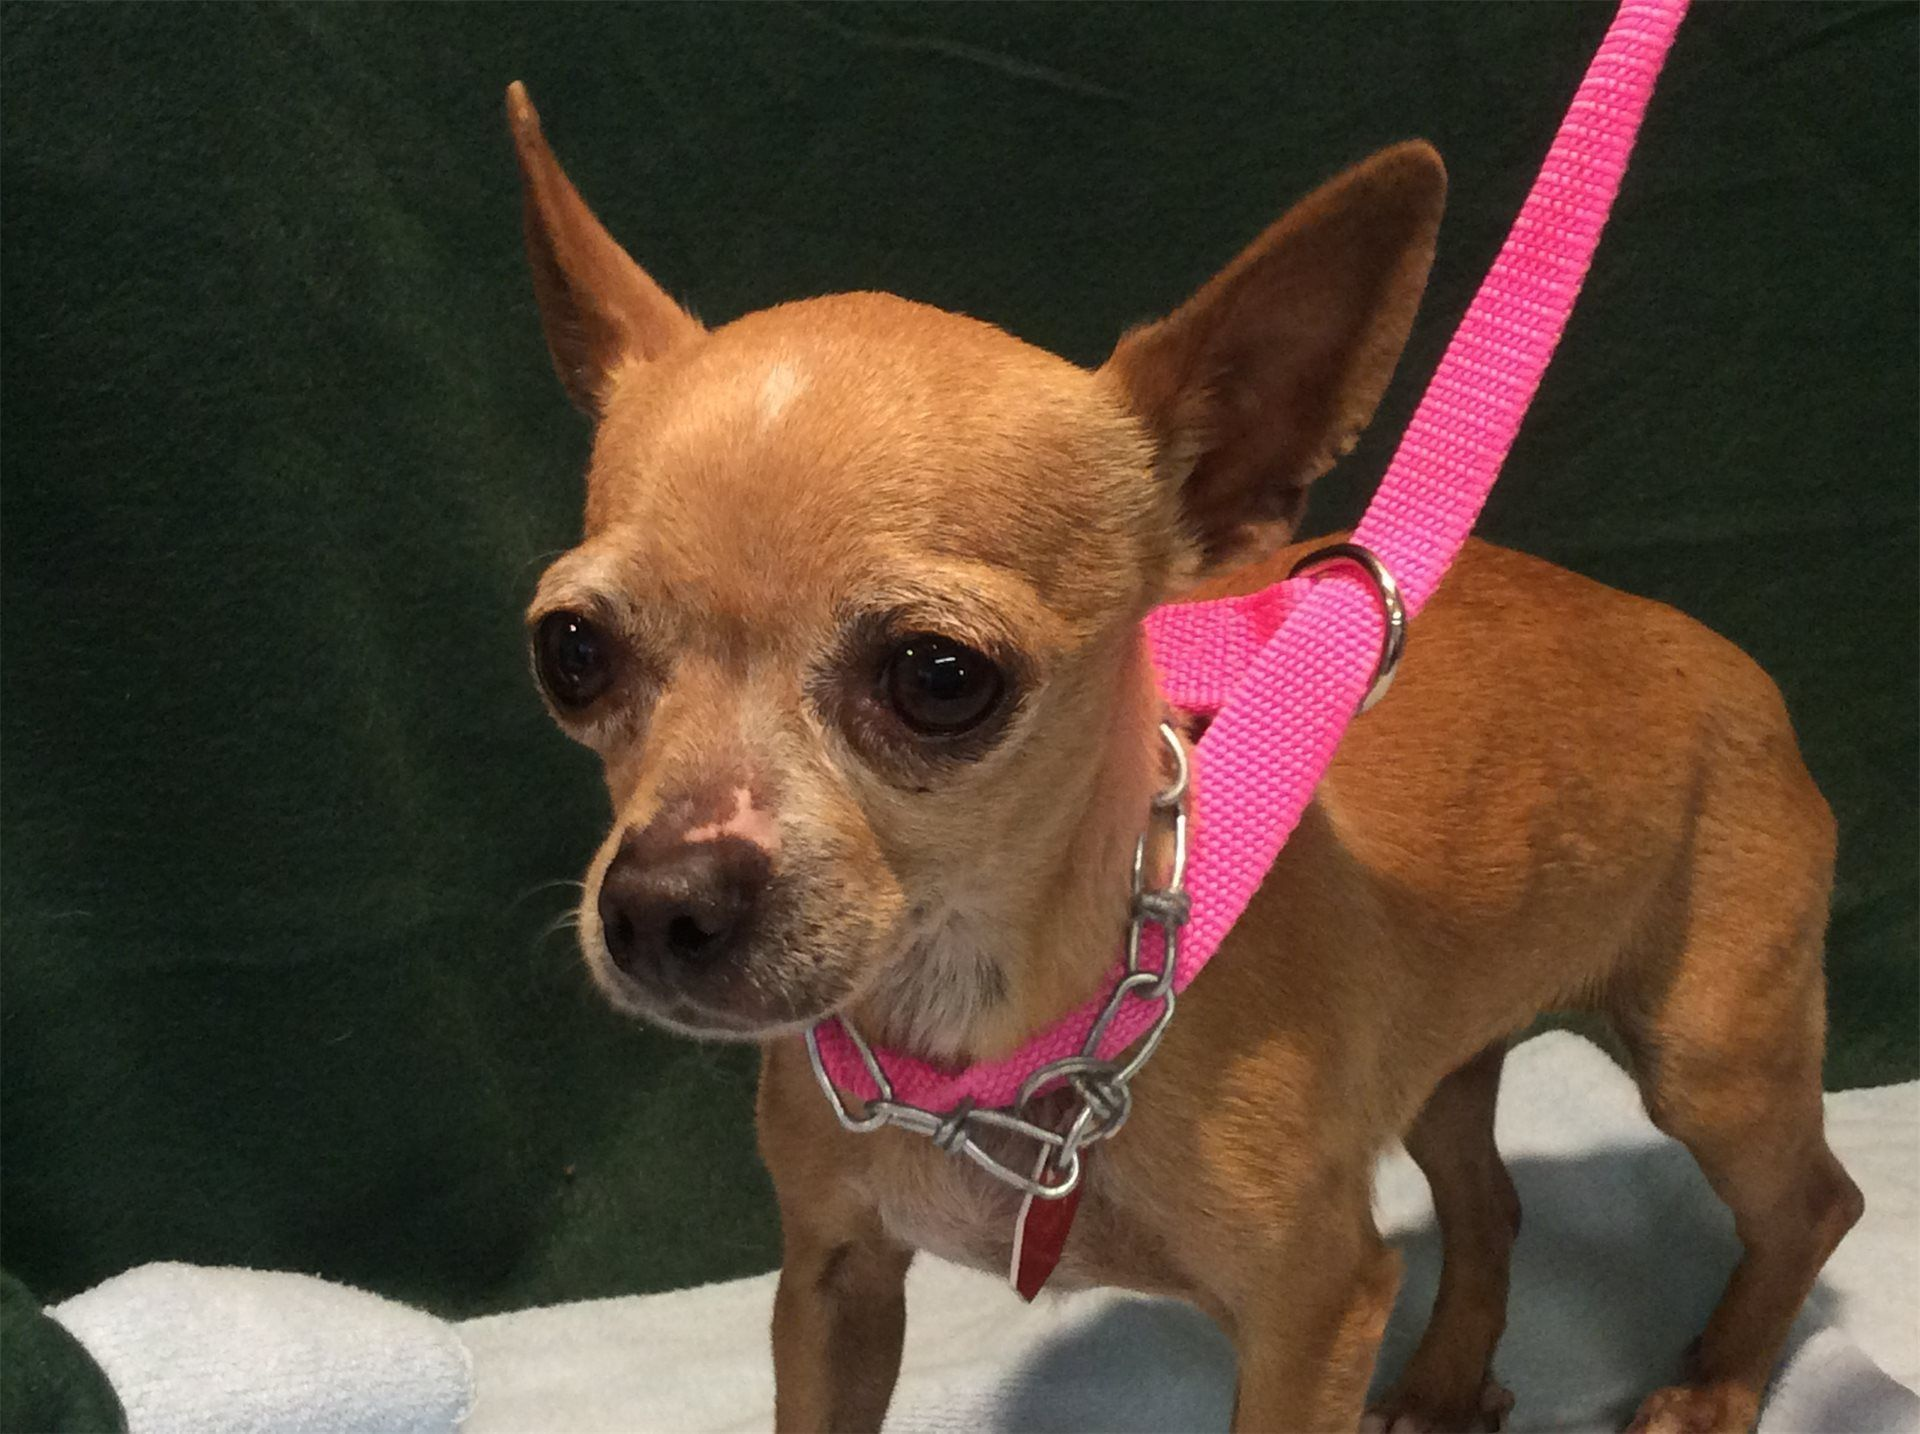 Chihuahua dog for Adoption in pomona, CA. ADN483481 on